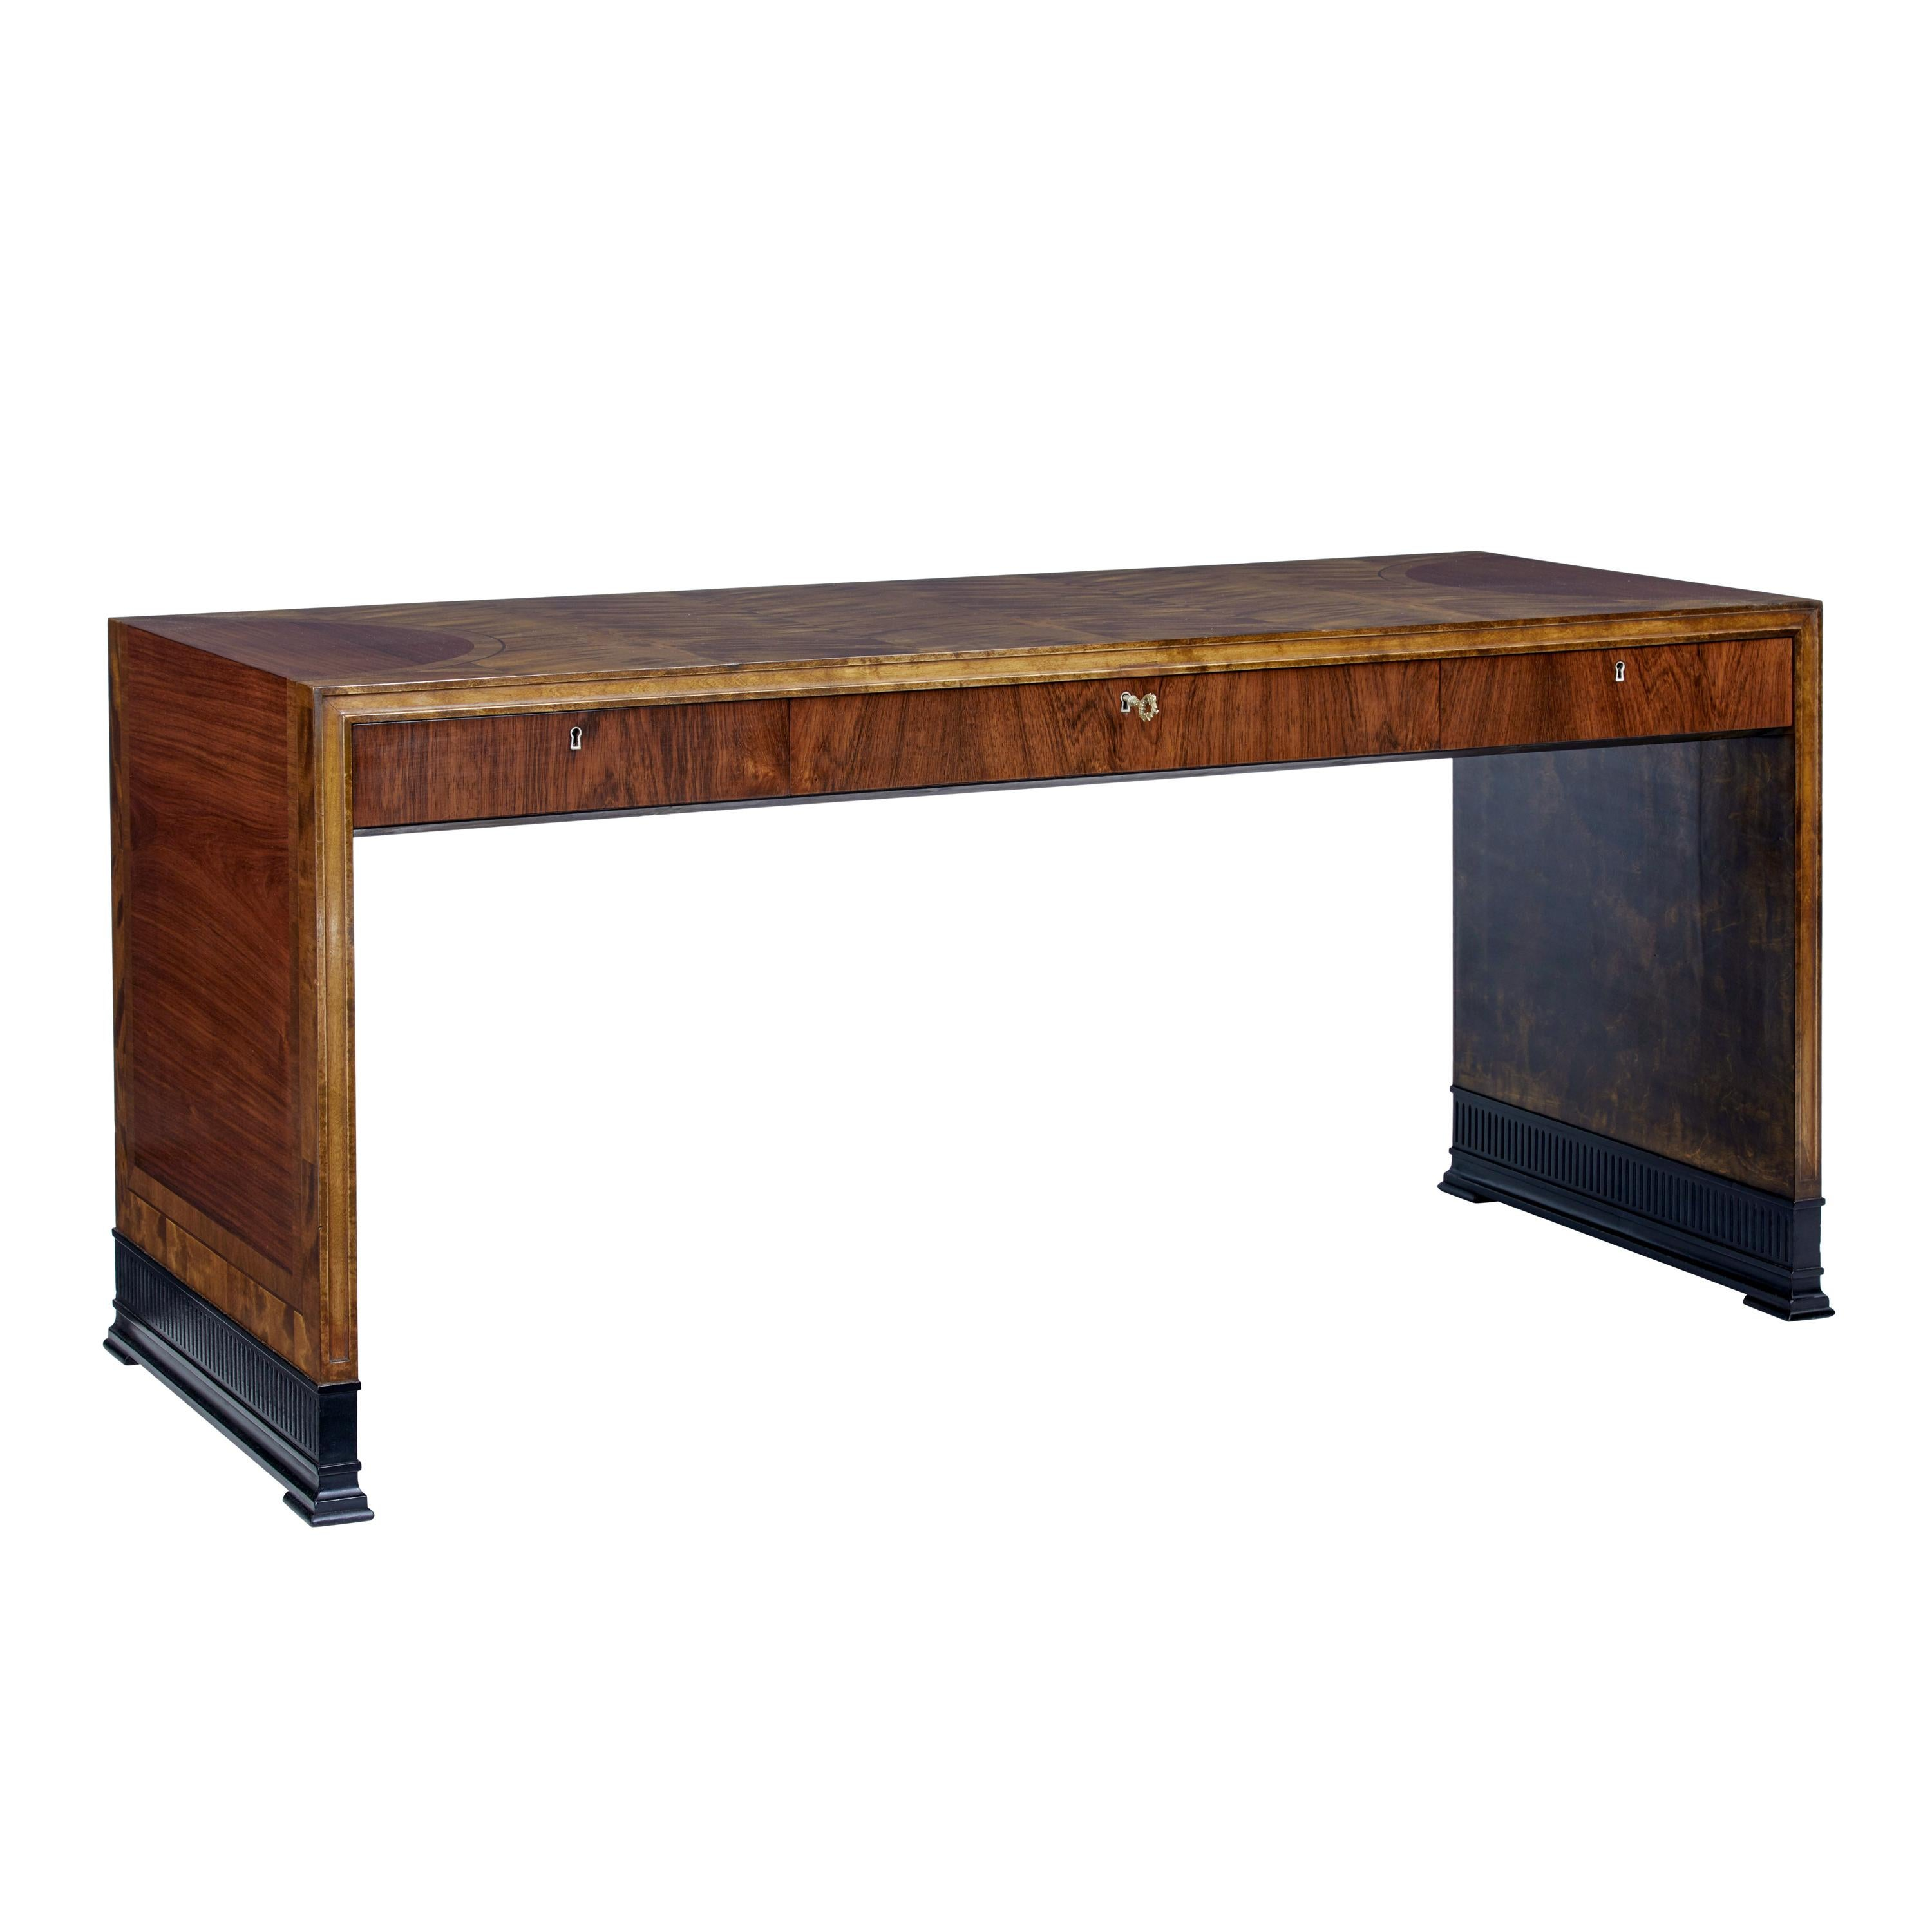 Art Deco Mahogany And Birch Inlaid Low Desk For Sale At 1stdibs - Low Desk